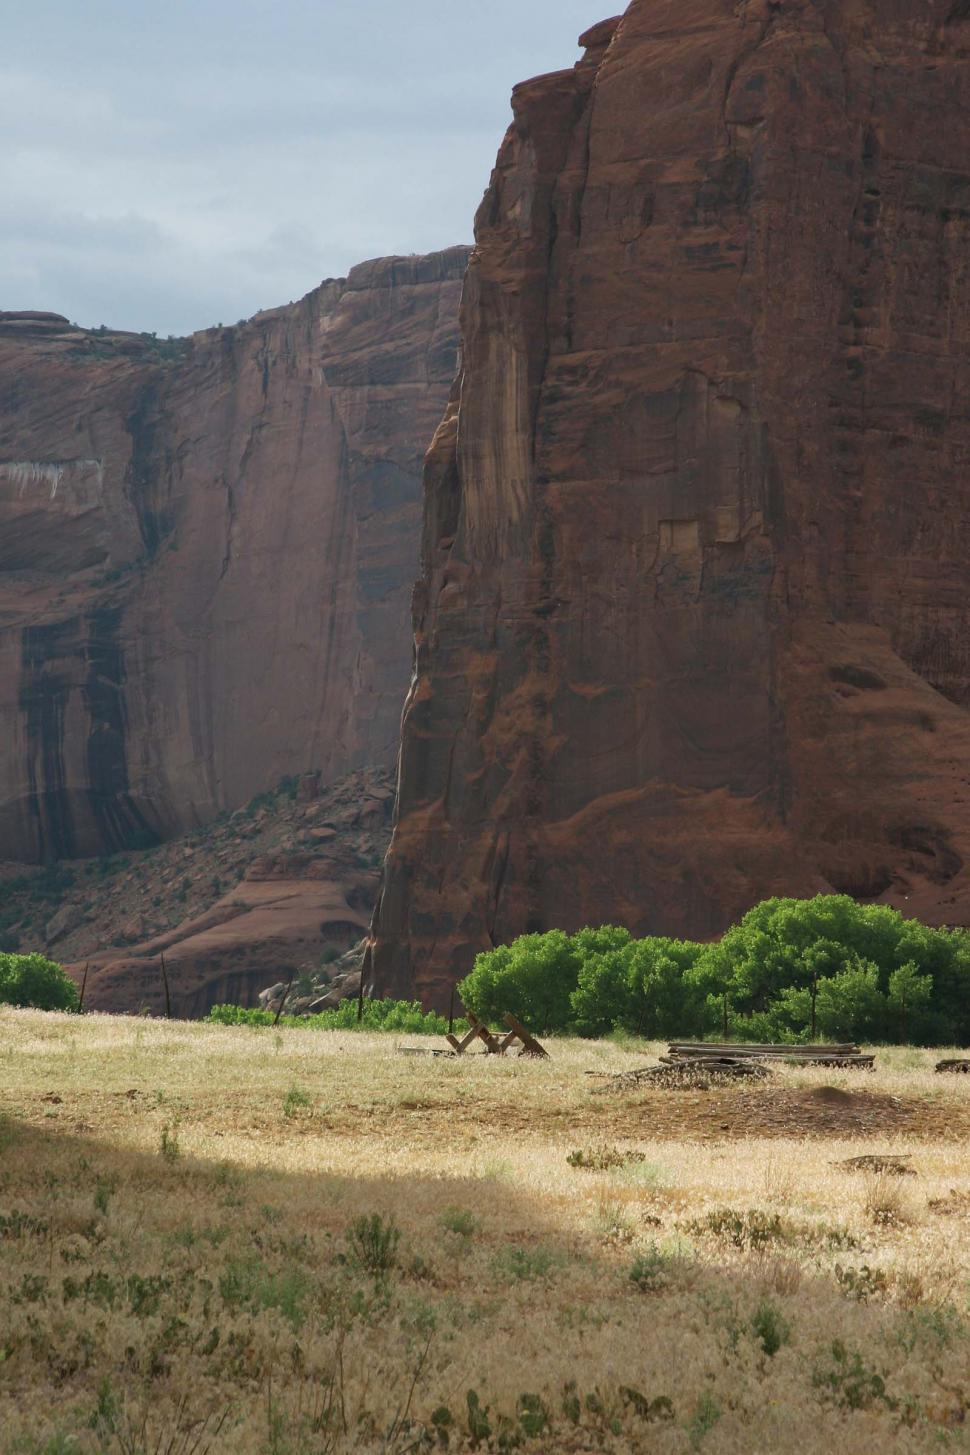 Download Free Stock Photo of cliff cliffs canyon de chelly chelly canyon de arizona indian native american monument national navajo southwest field grasslands pasture fence barbed wire floor landscape beautiful dramatic